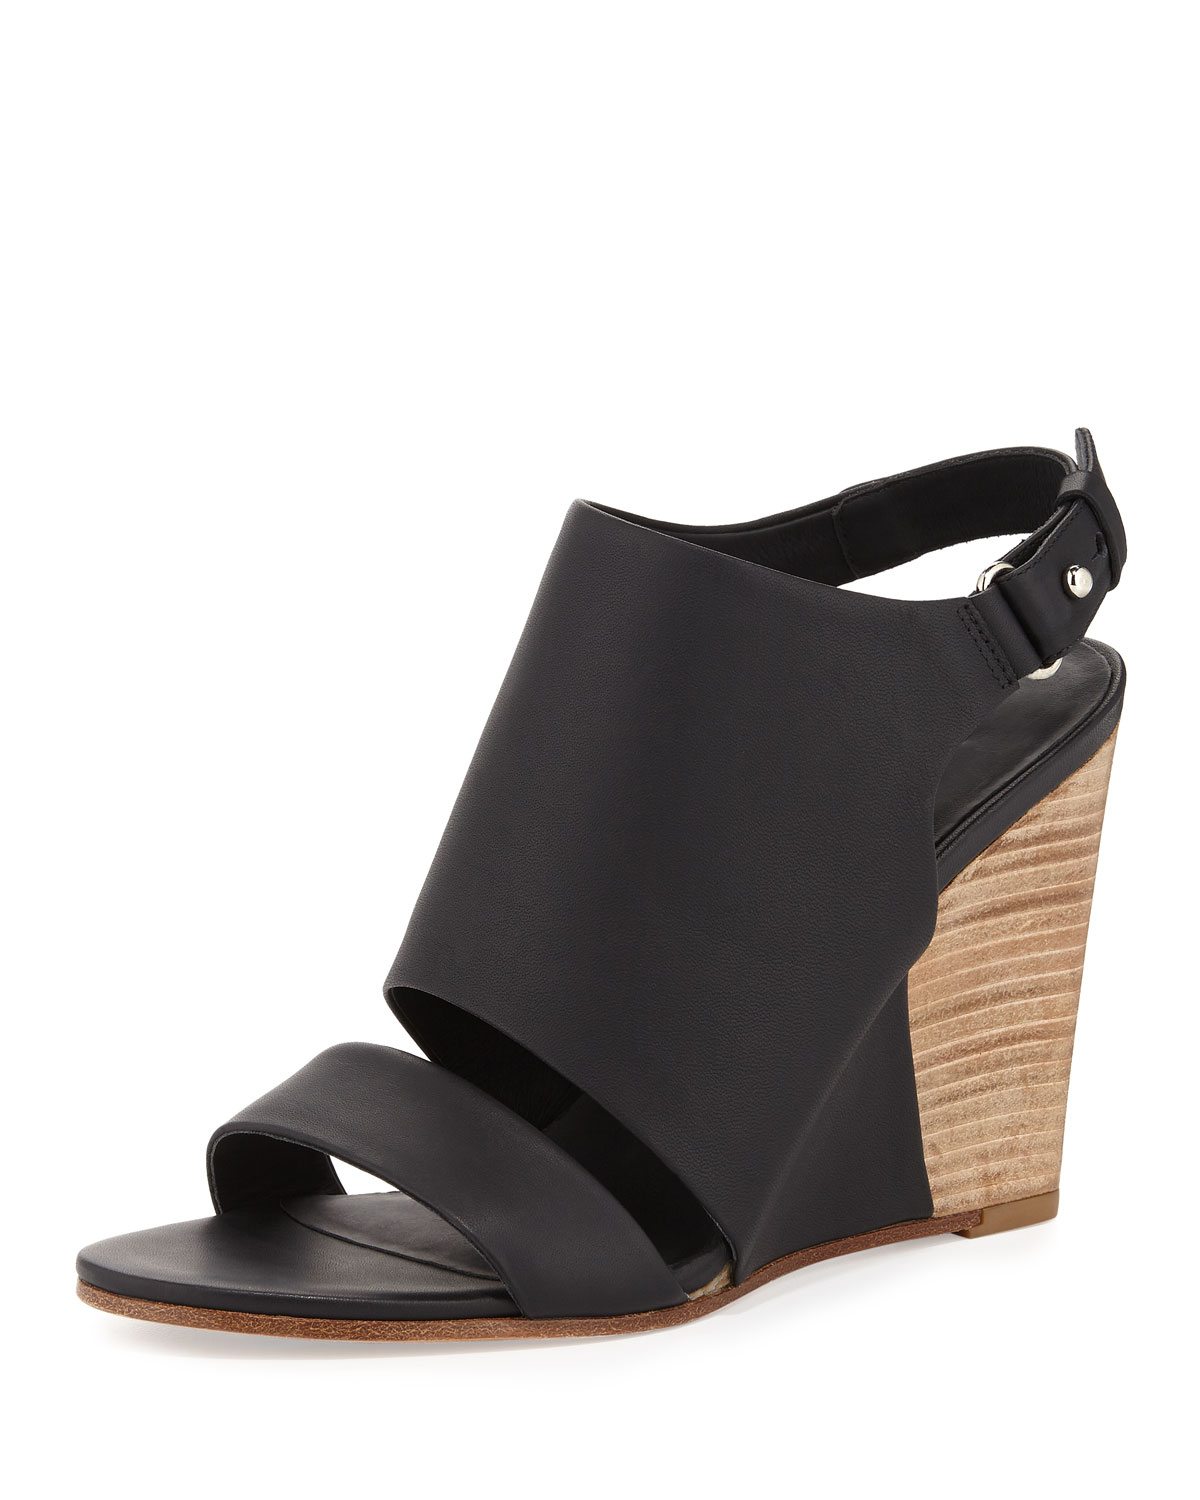 b45c2a7930 Vince Karen Leather Wedge Sandal in Black - Lyst